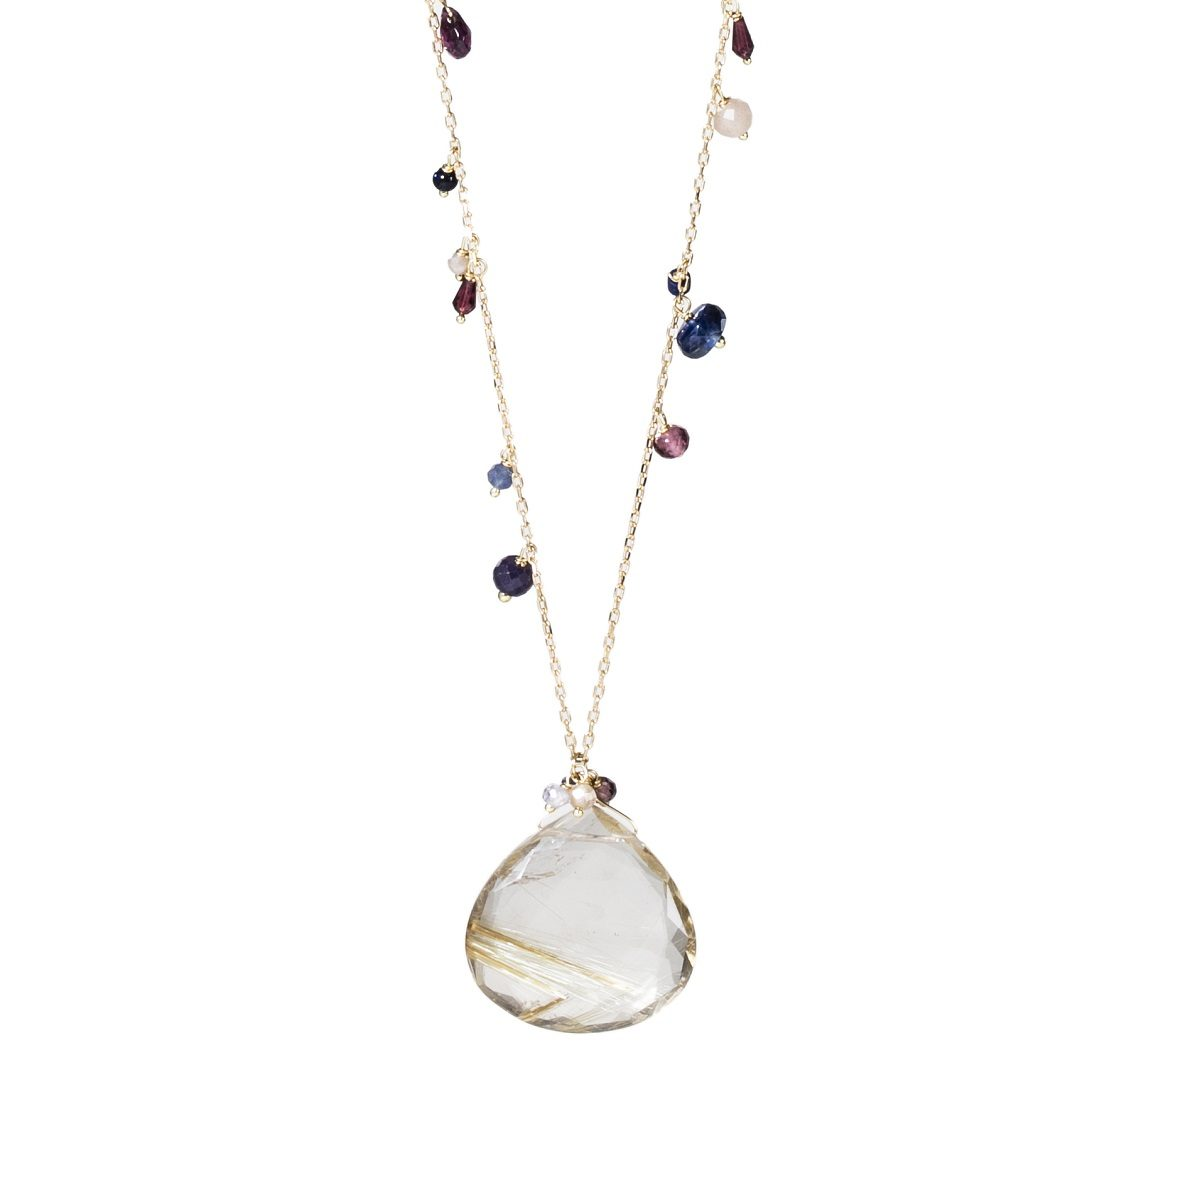 swp_necklace_6_182